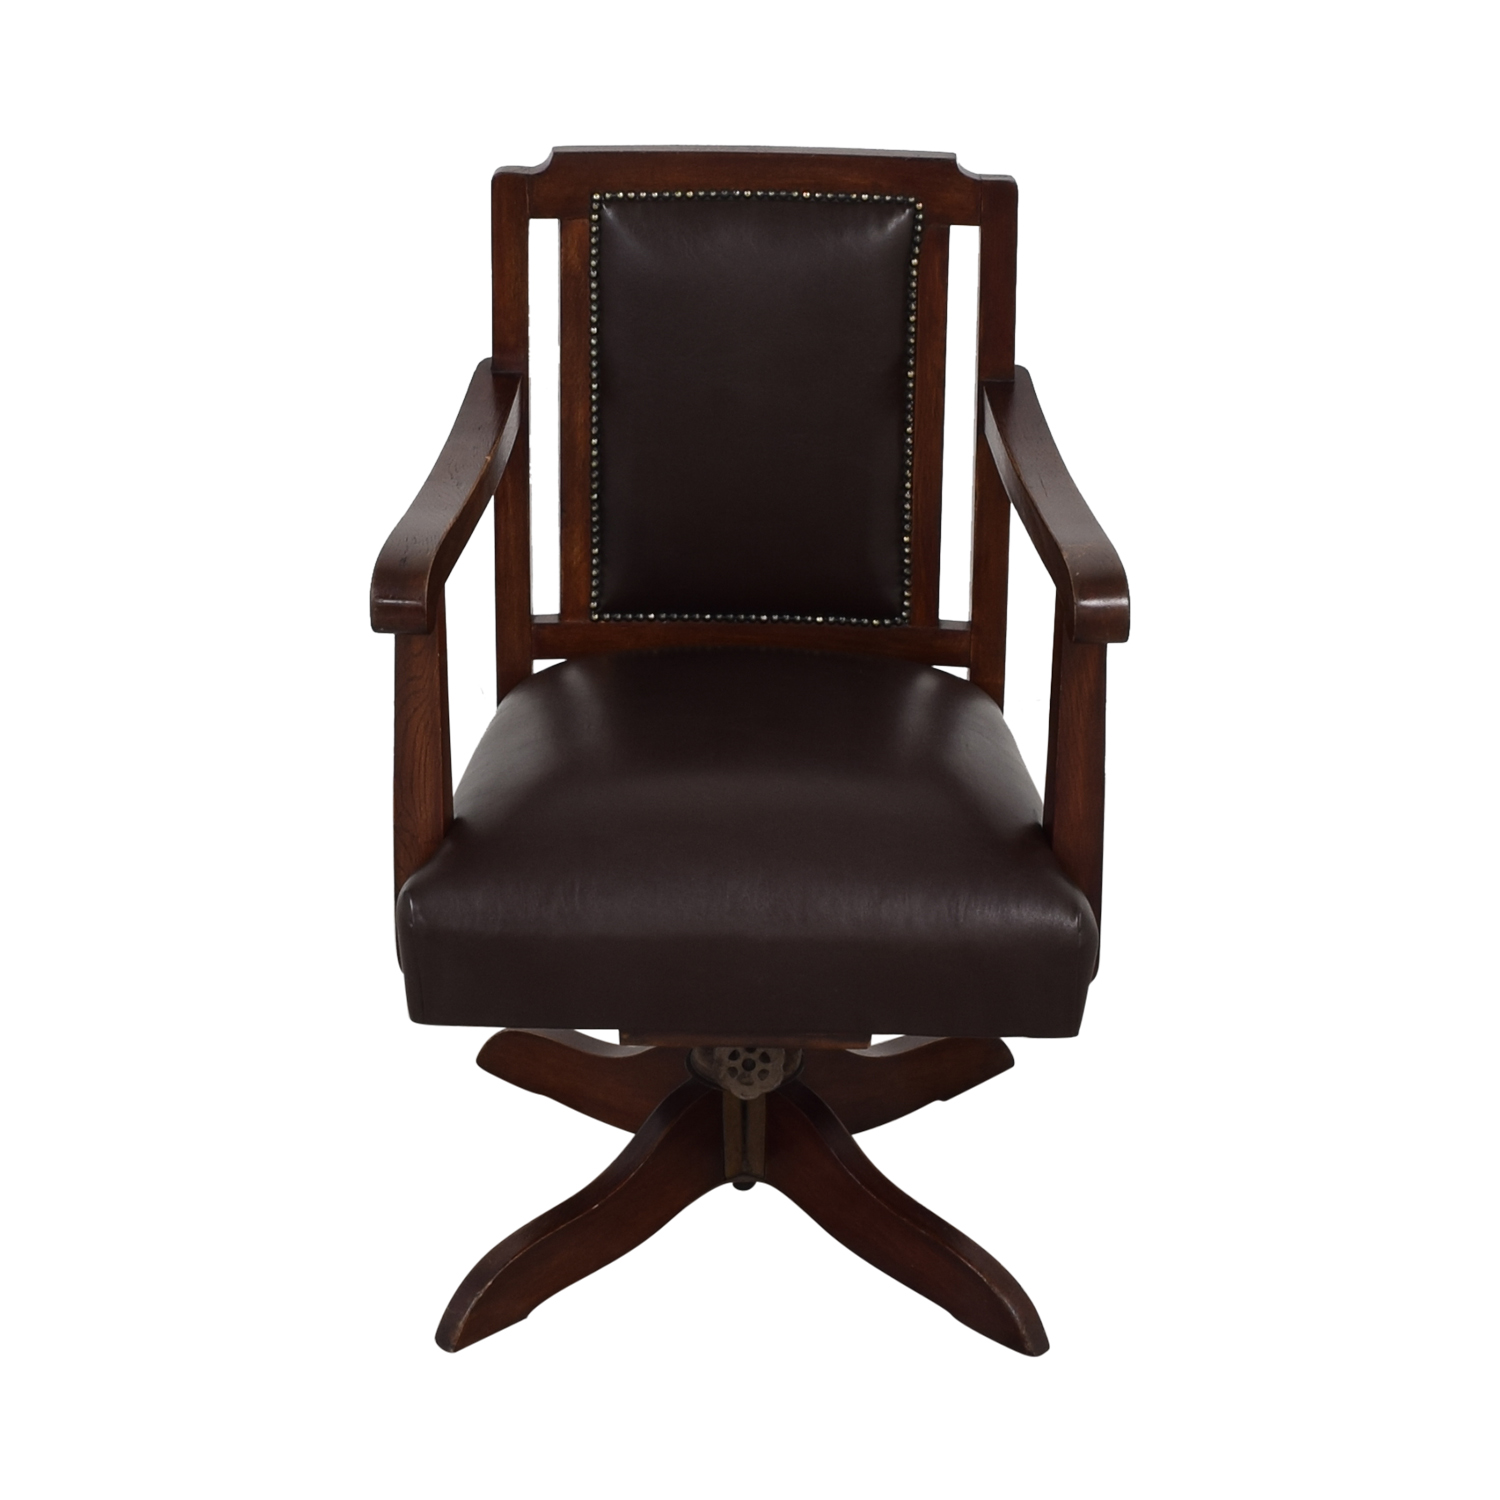 Hillcrest Chair Actions Hillcrest Swivel Desk Chair Home Office Chairs